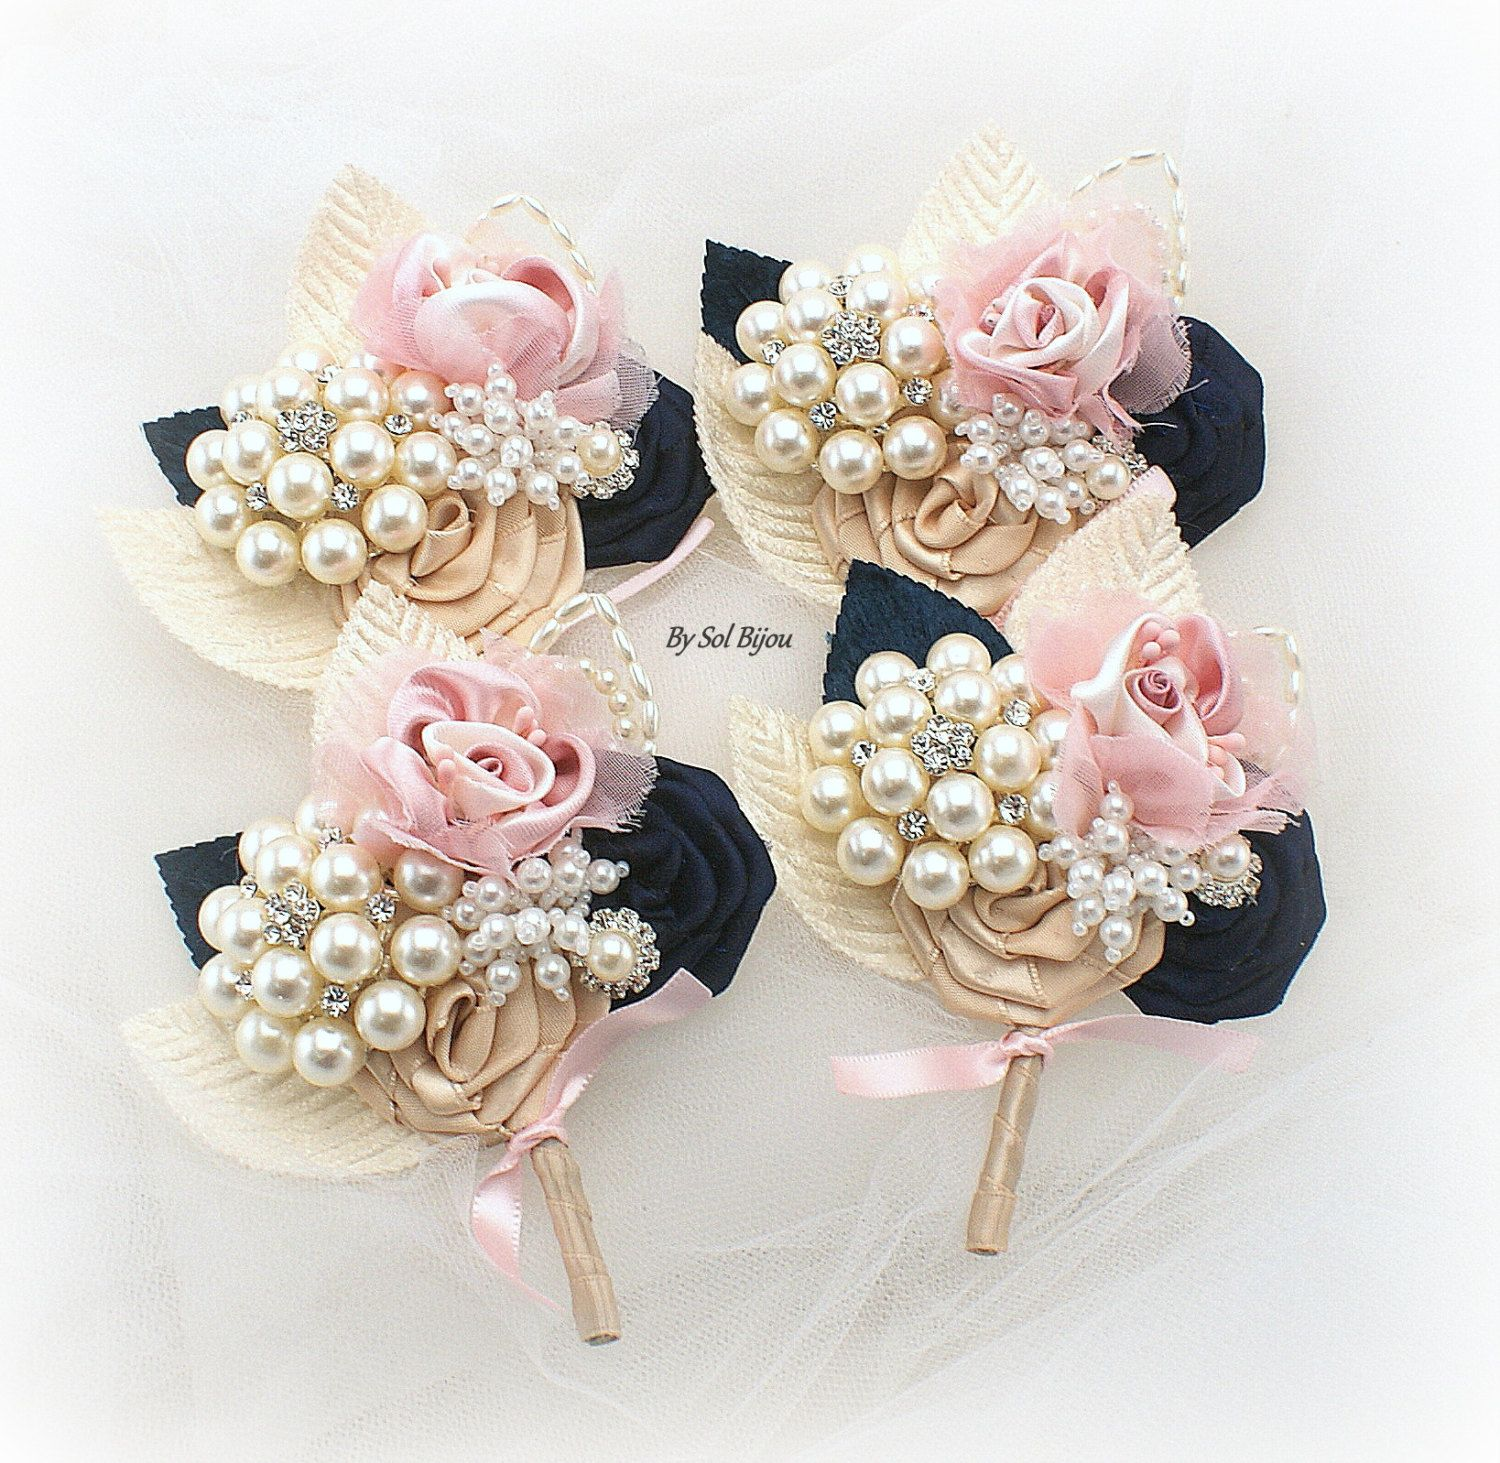 Blush Groomsmen Boutonnieres Corsages Mother Of The Bride